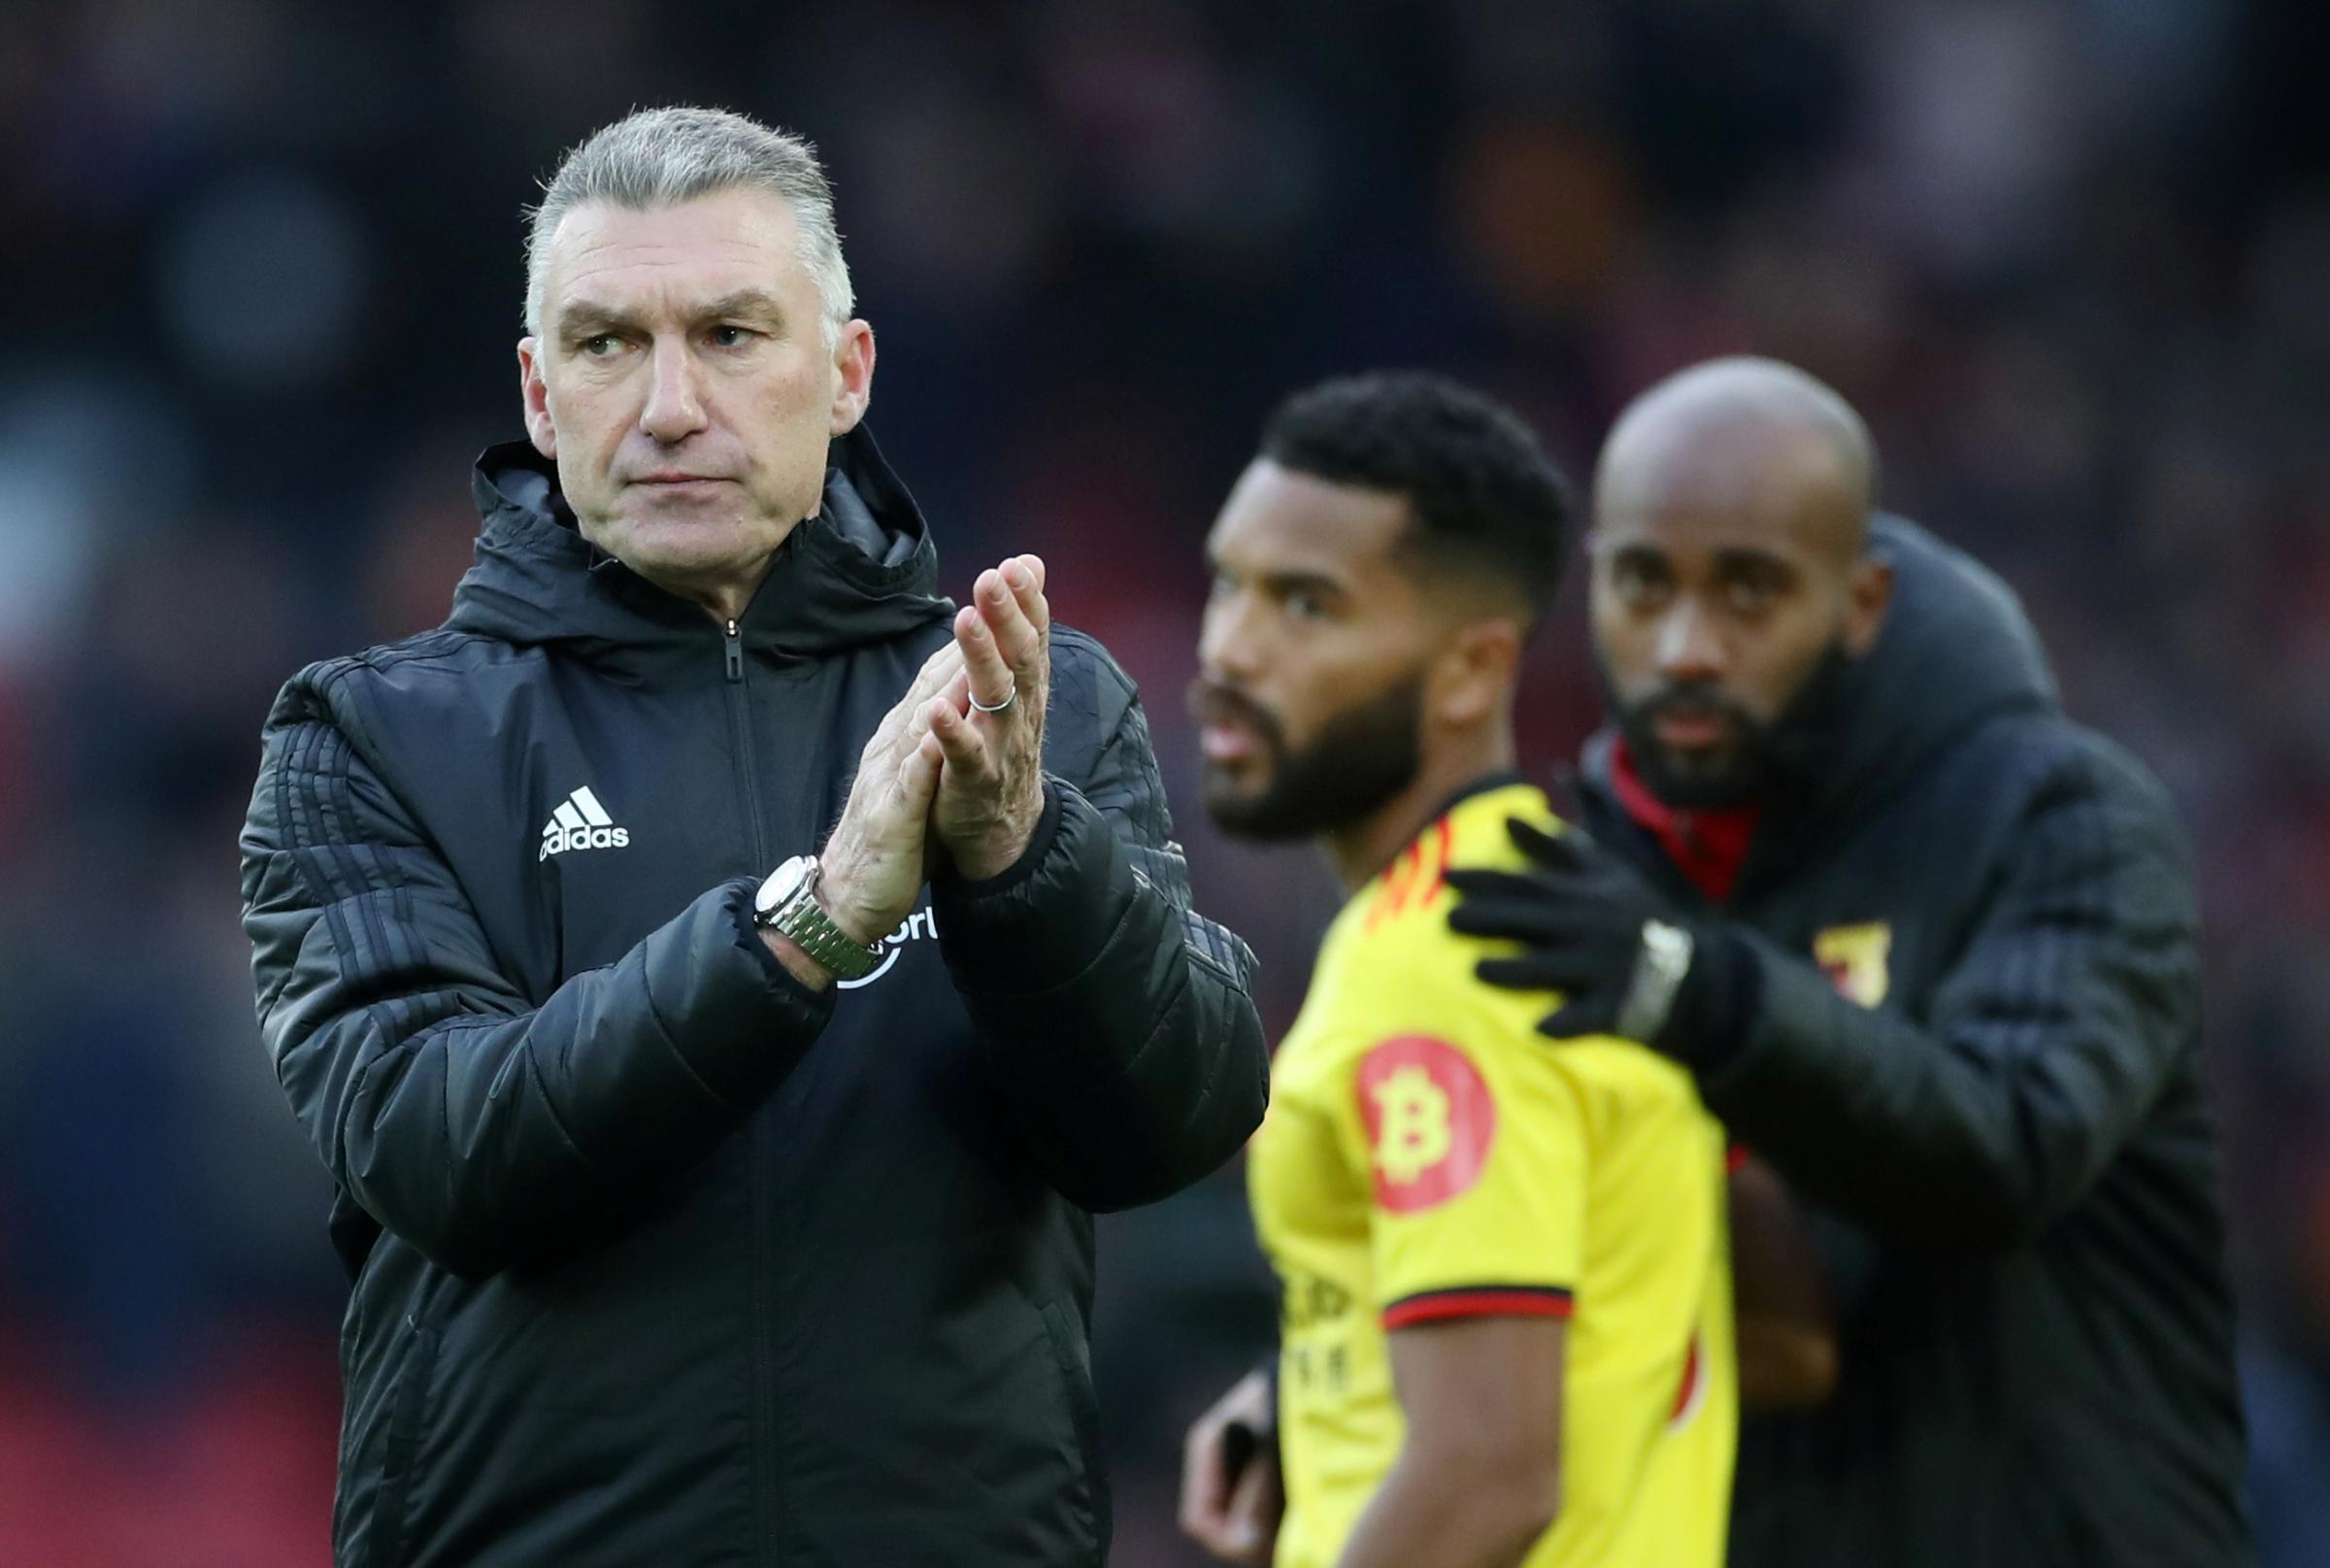 Nigel Pearson disappointed after Watford impress in Liverpool defeat